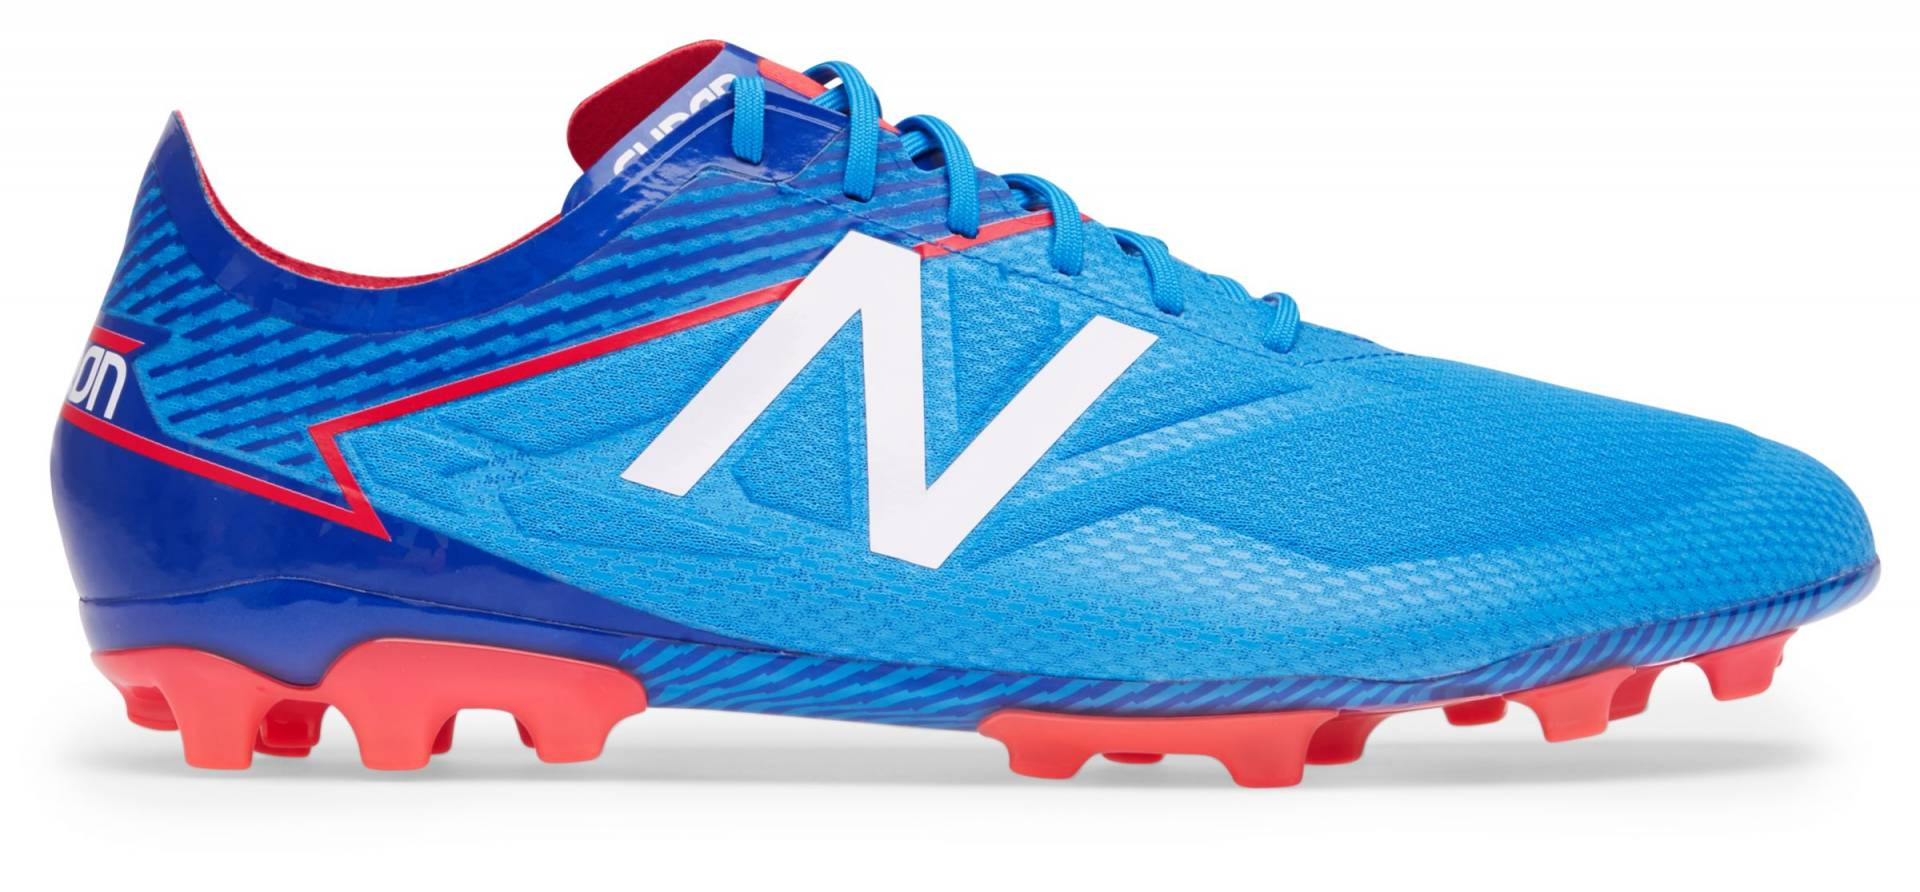 Furon 3.0 Pro AG de Bolt with Team Royal & Energy Red